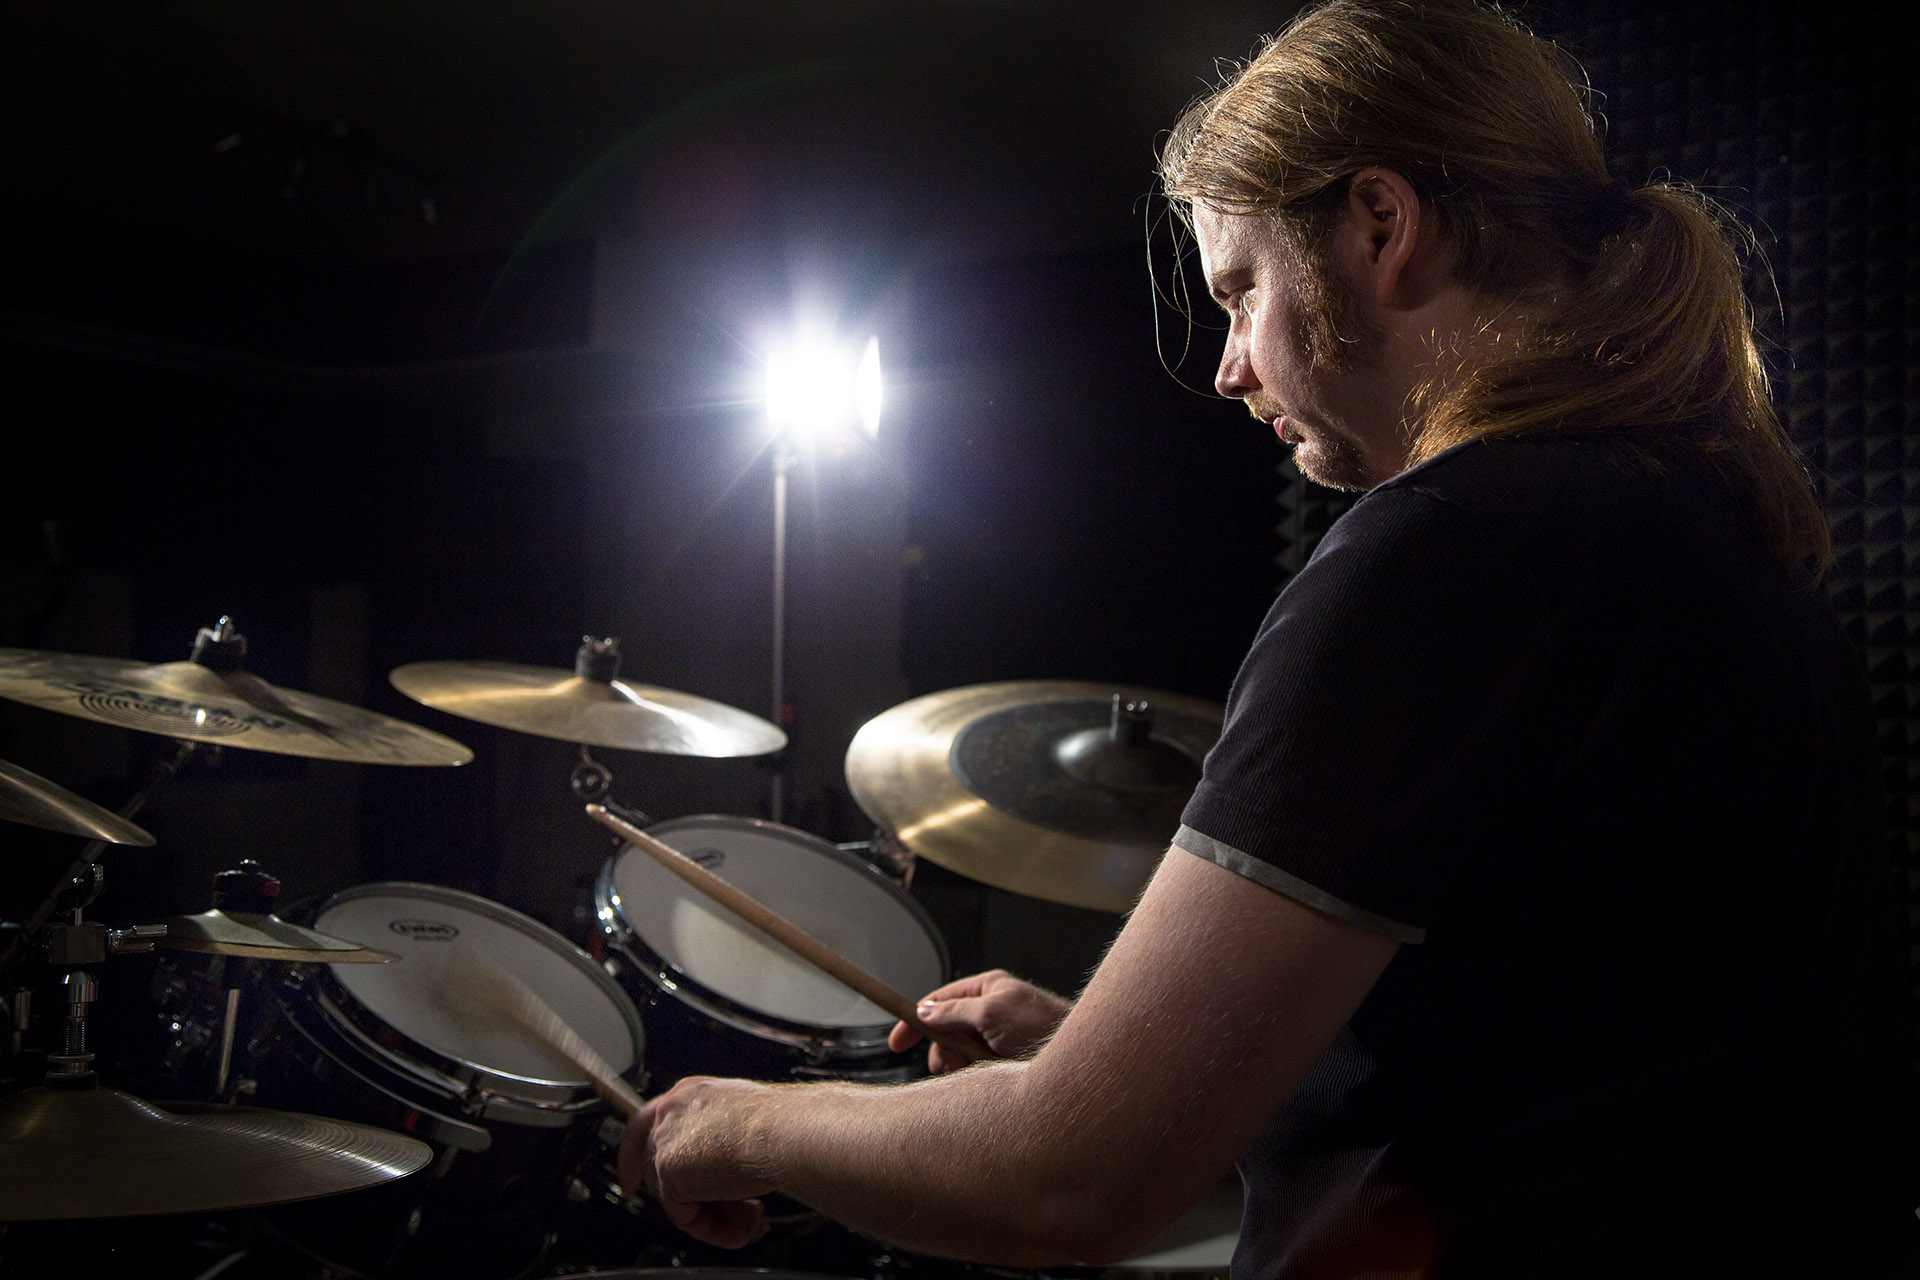 patrick_theil_drums_aachen_2